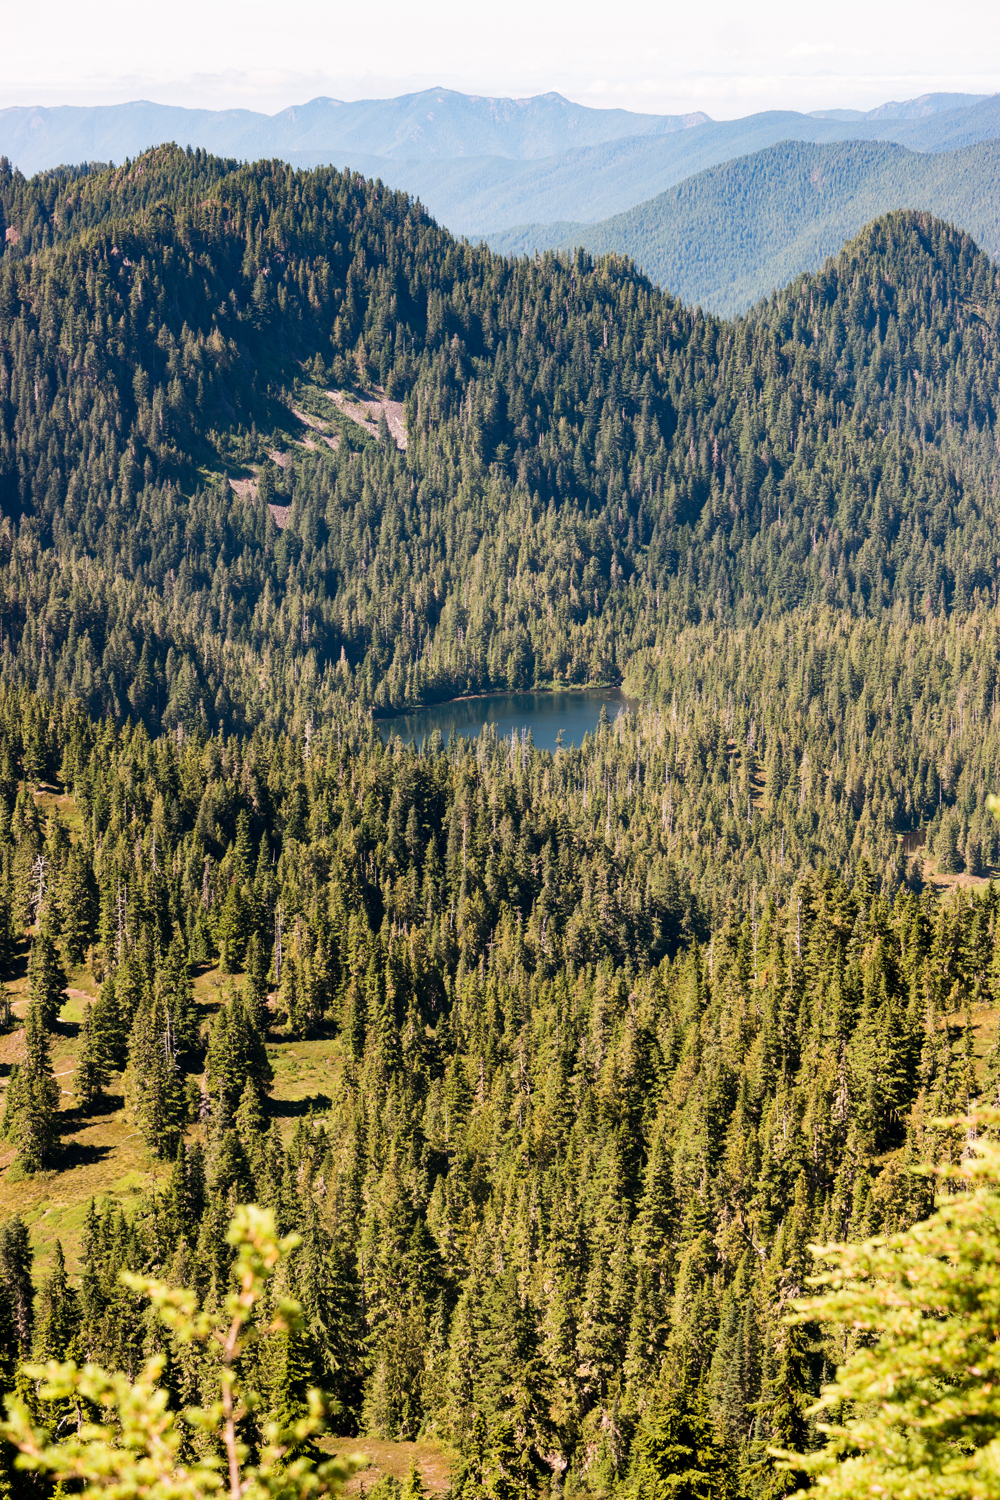 Wasim Muklashy Photography_Olympic National Park_High Divide Loop_085.jpg